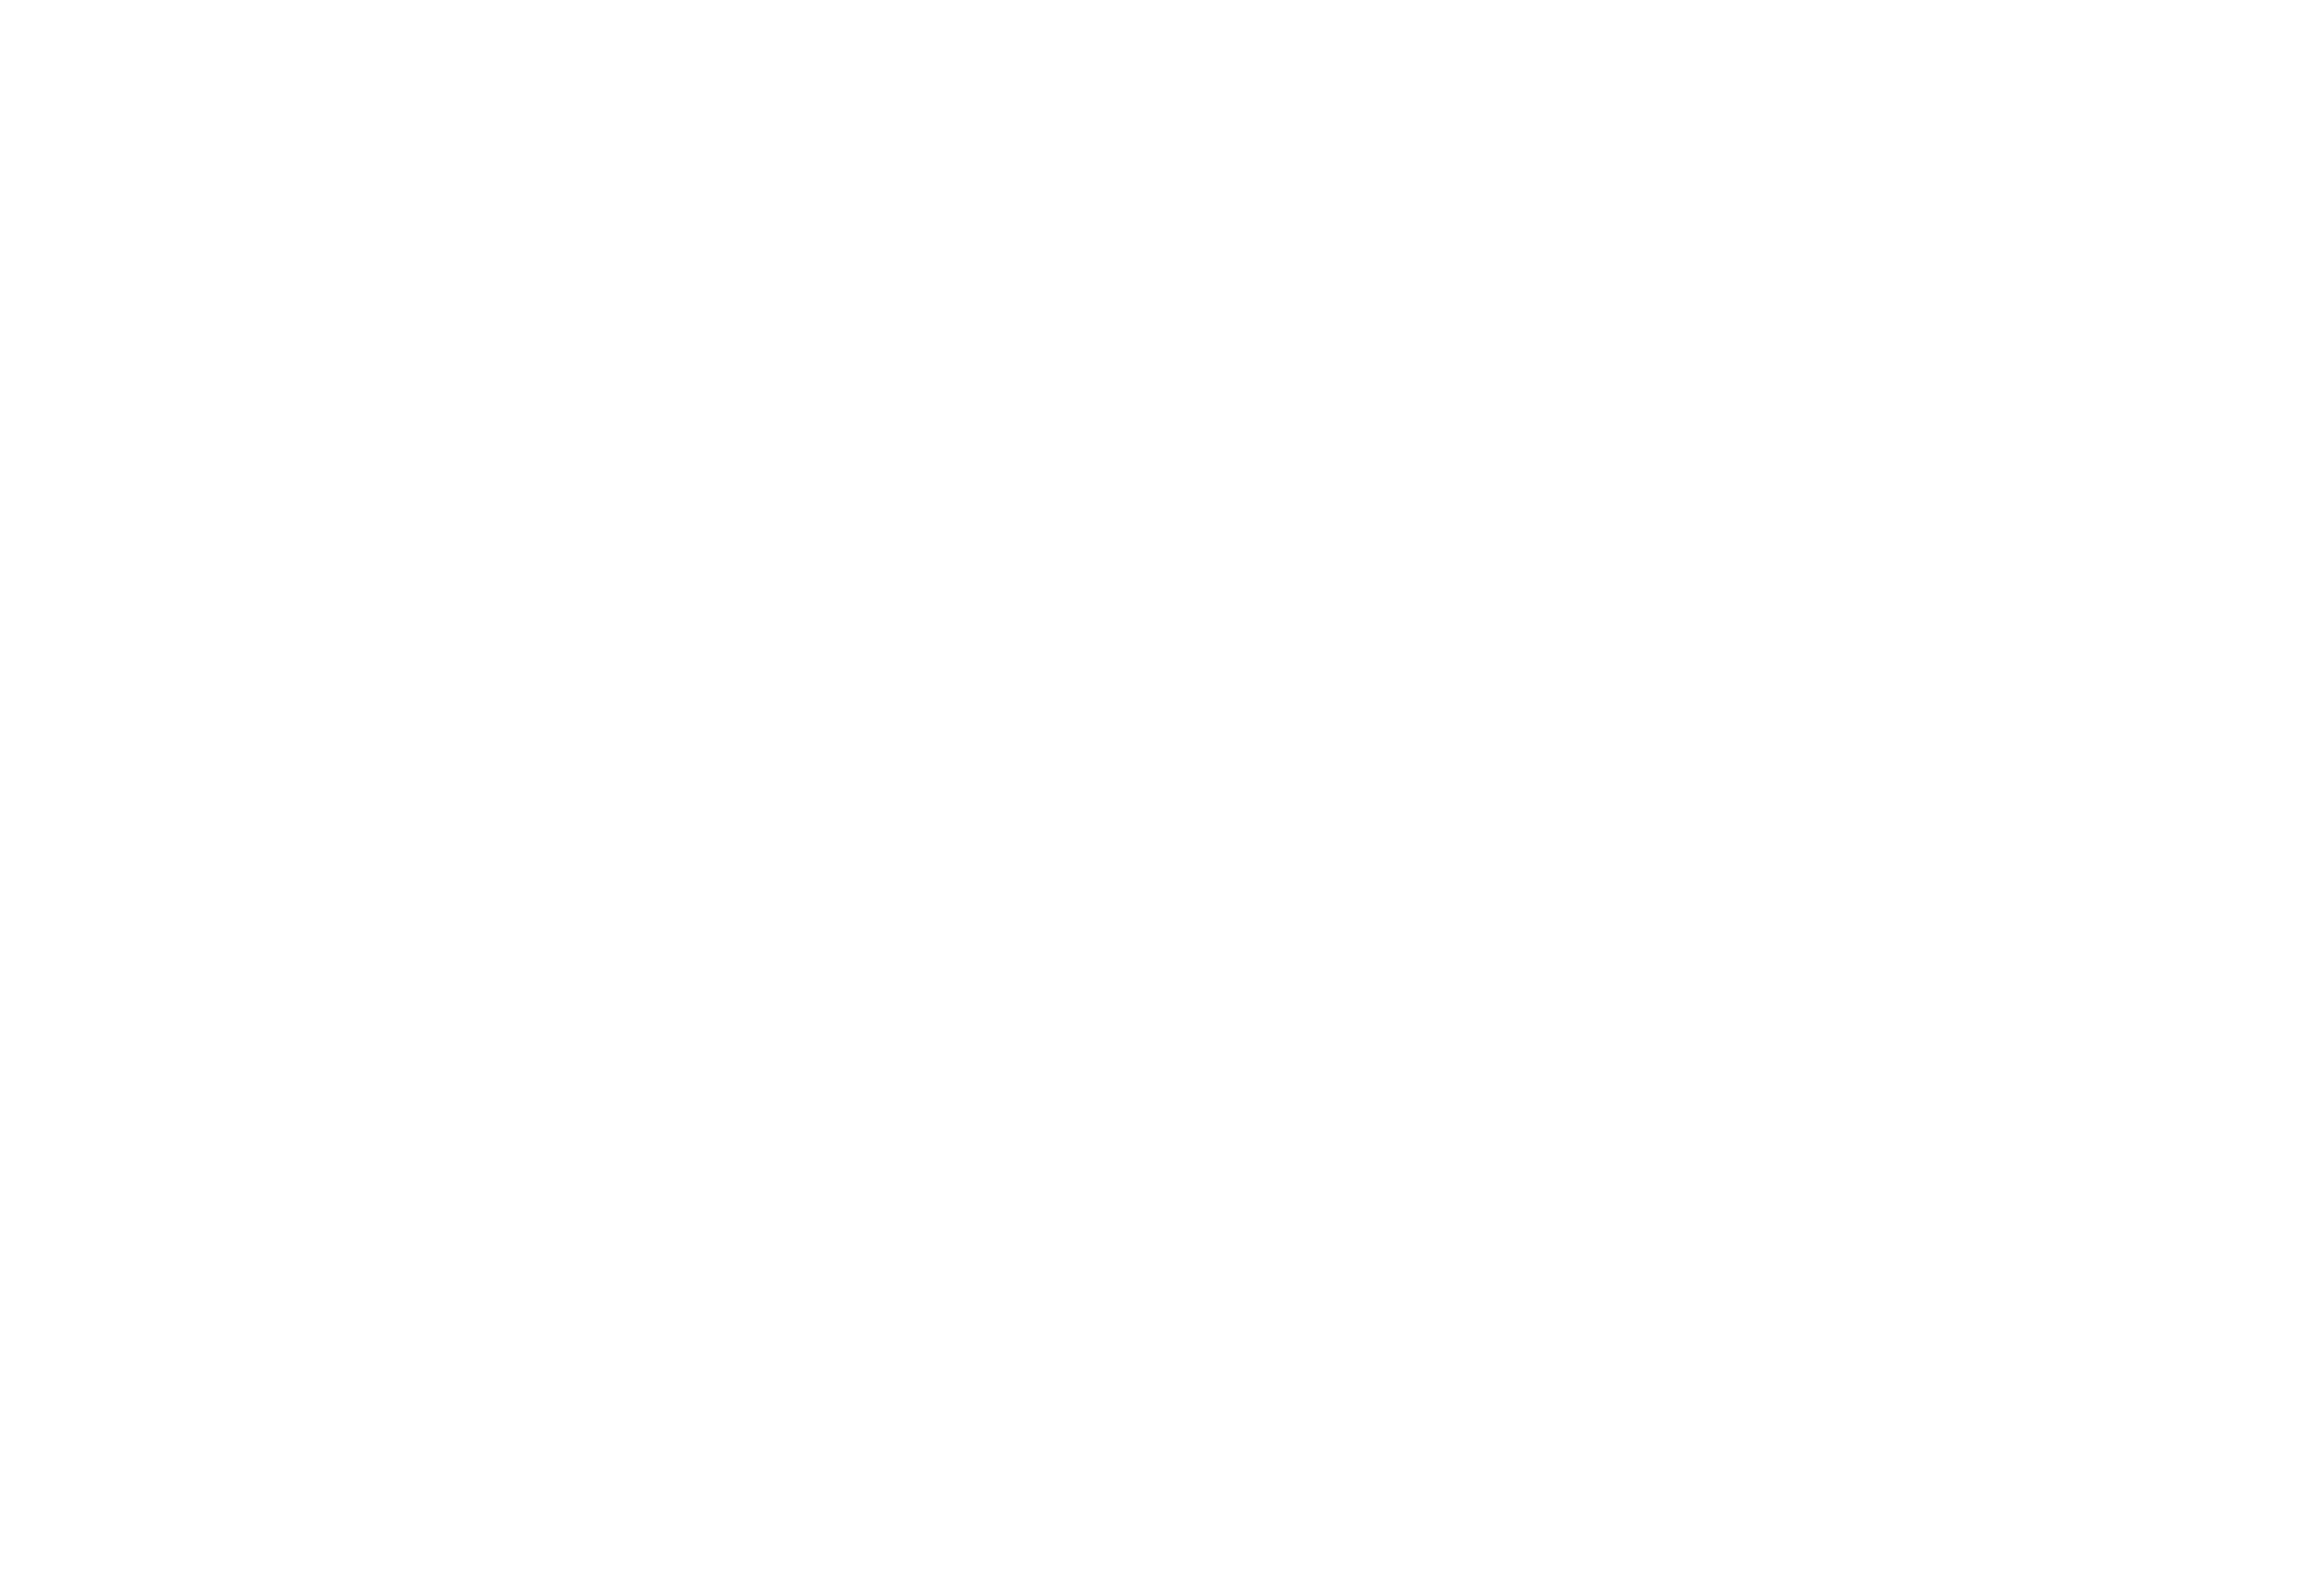 Beratung: Inhalt (Story, Spannung, Klarheit, Botschaften, Content-Art), Videostil (Colorgrading, Sprcher, Sound, Filmstil, Intro/Outro, Grafikelemente), Vermarktung (Interaktion, Distribution, Paid Ads, Social Spread, Redaktionsplan, Stills & Short-Clips)